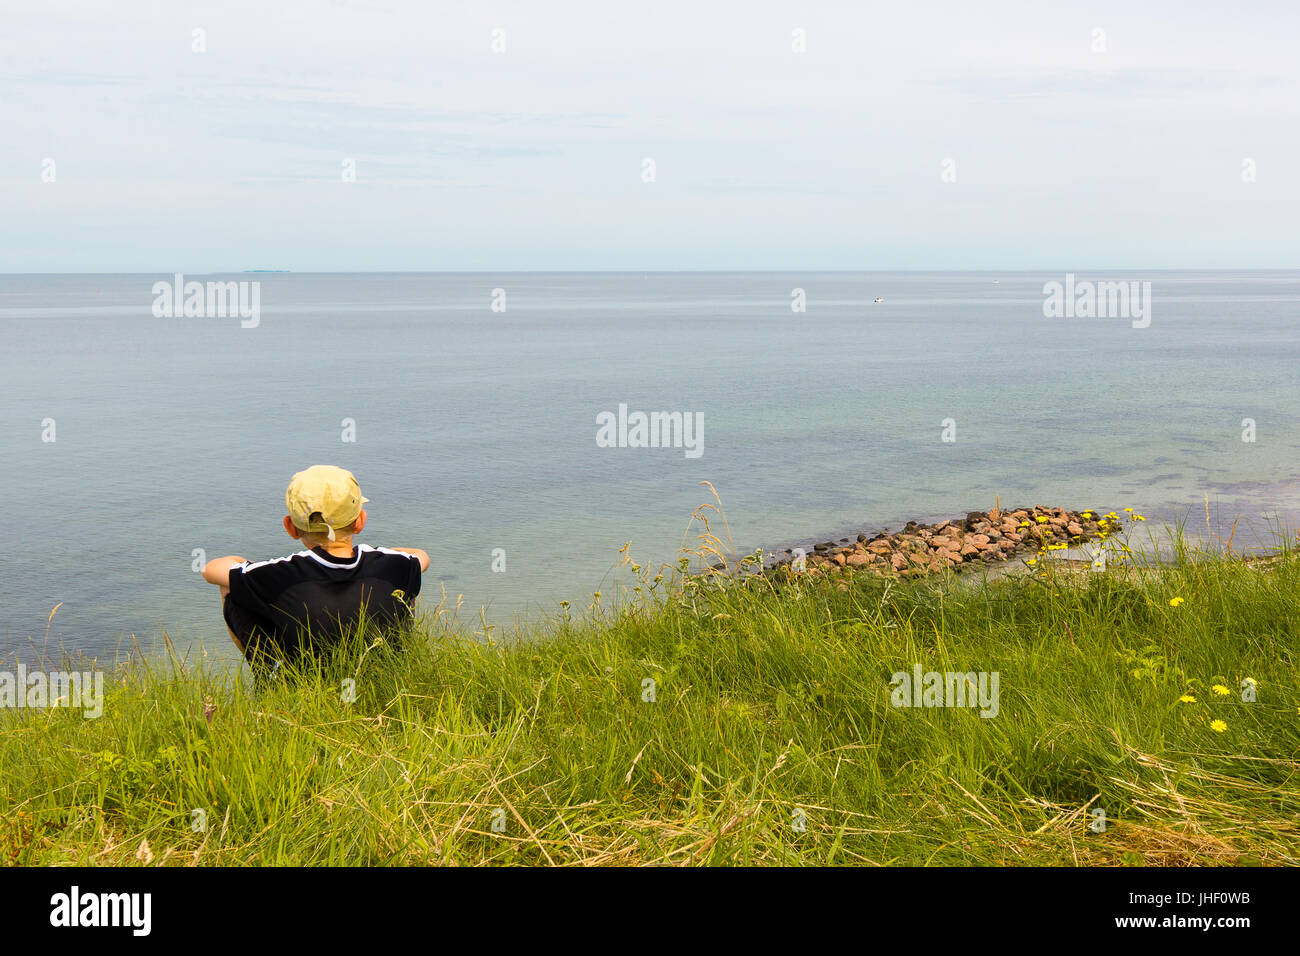 Boy sitting on te edge of a scarp, high obove the sea, Hundested, Denmark, July 10, 2017 - Stock Image